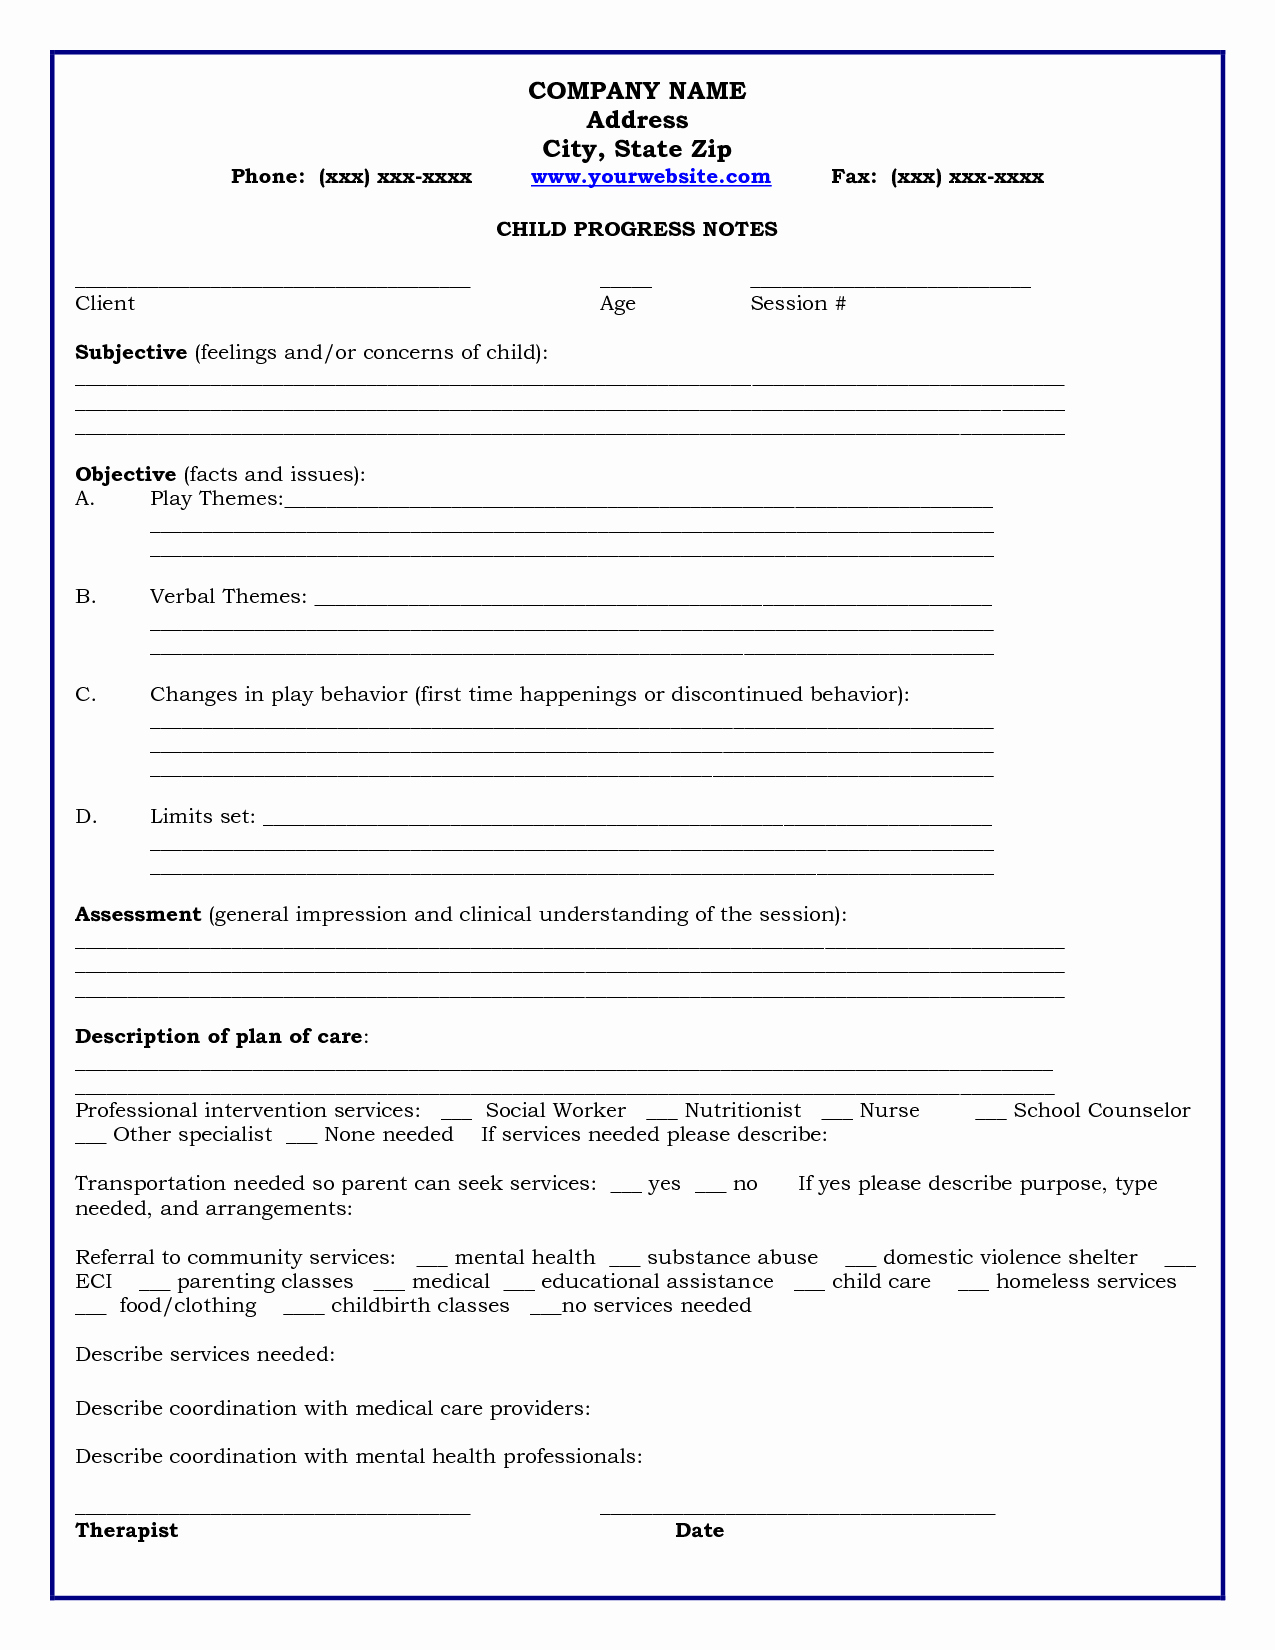 Group therapy Note Template Lovely Group therapy Note Template How You Can attend Group